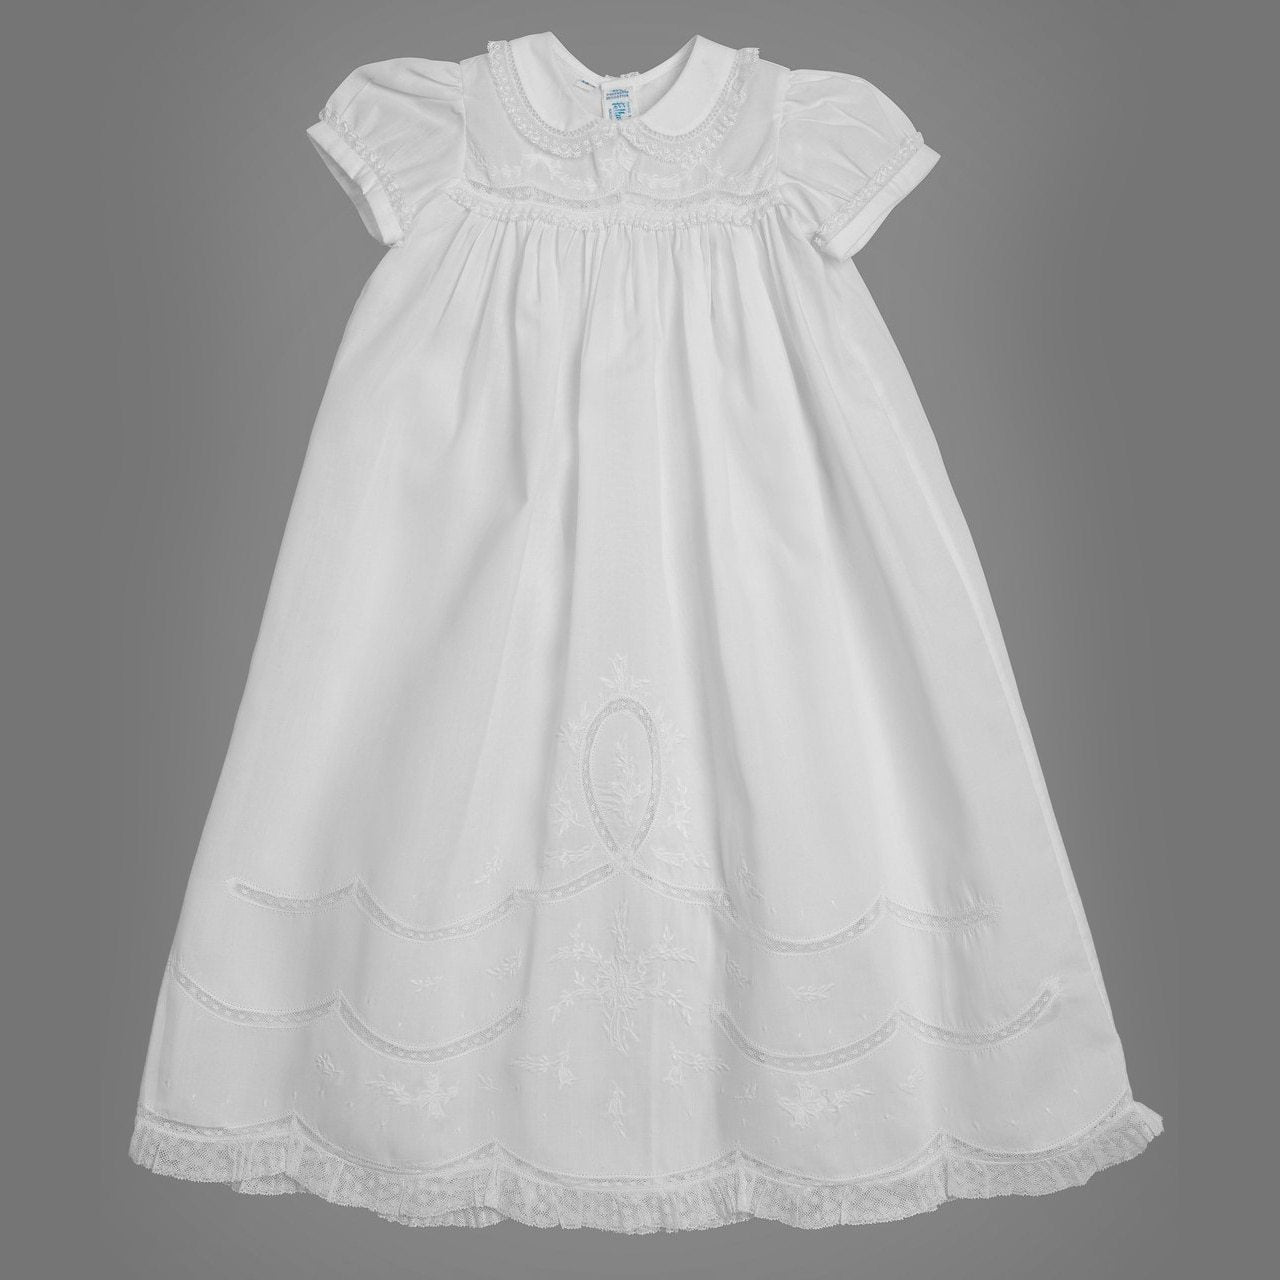 Girls Scalloped Lace Special Occasion Gown Set